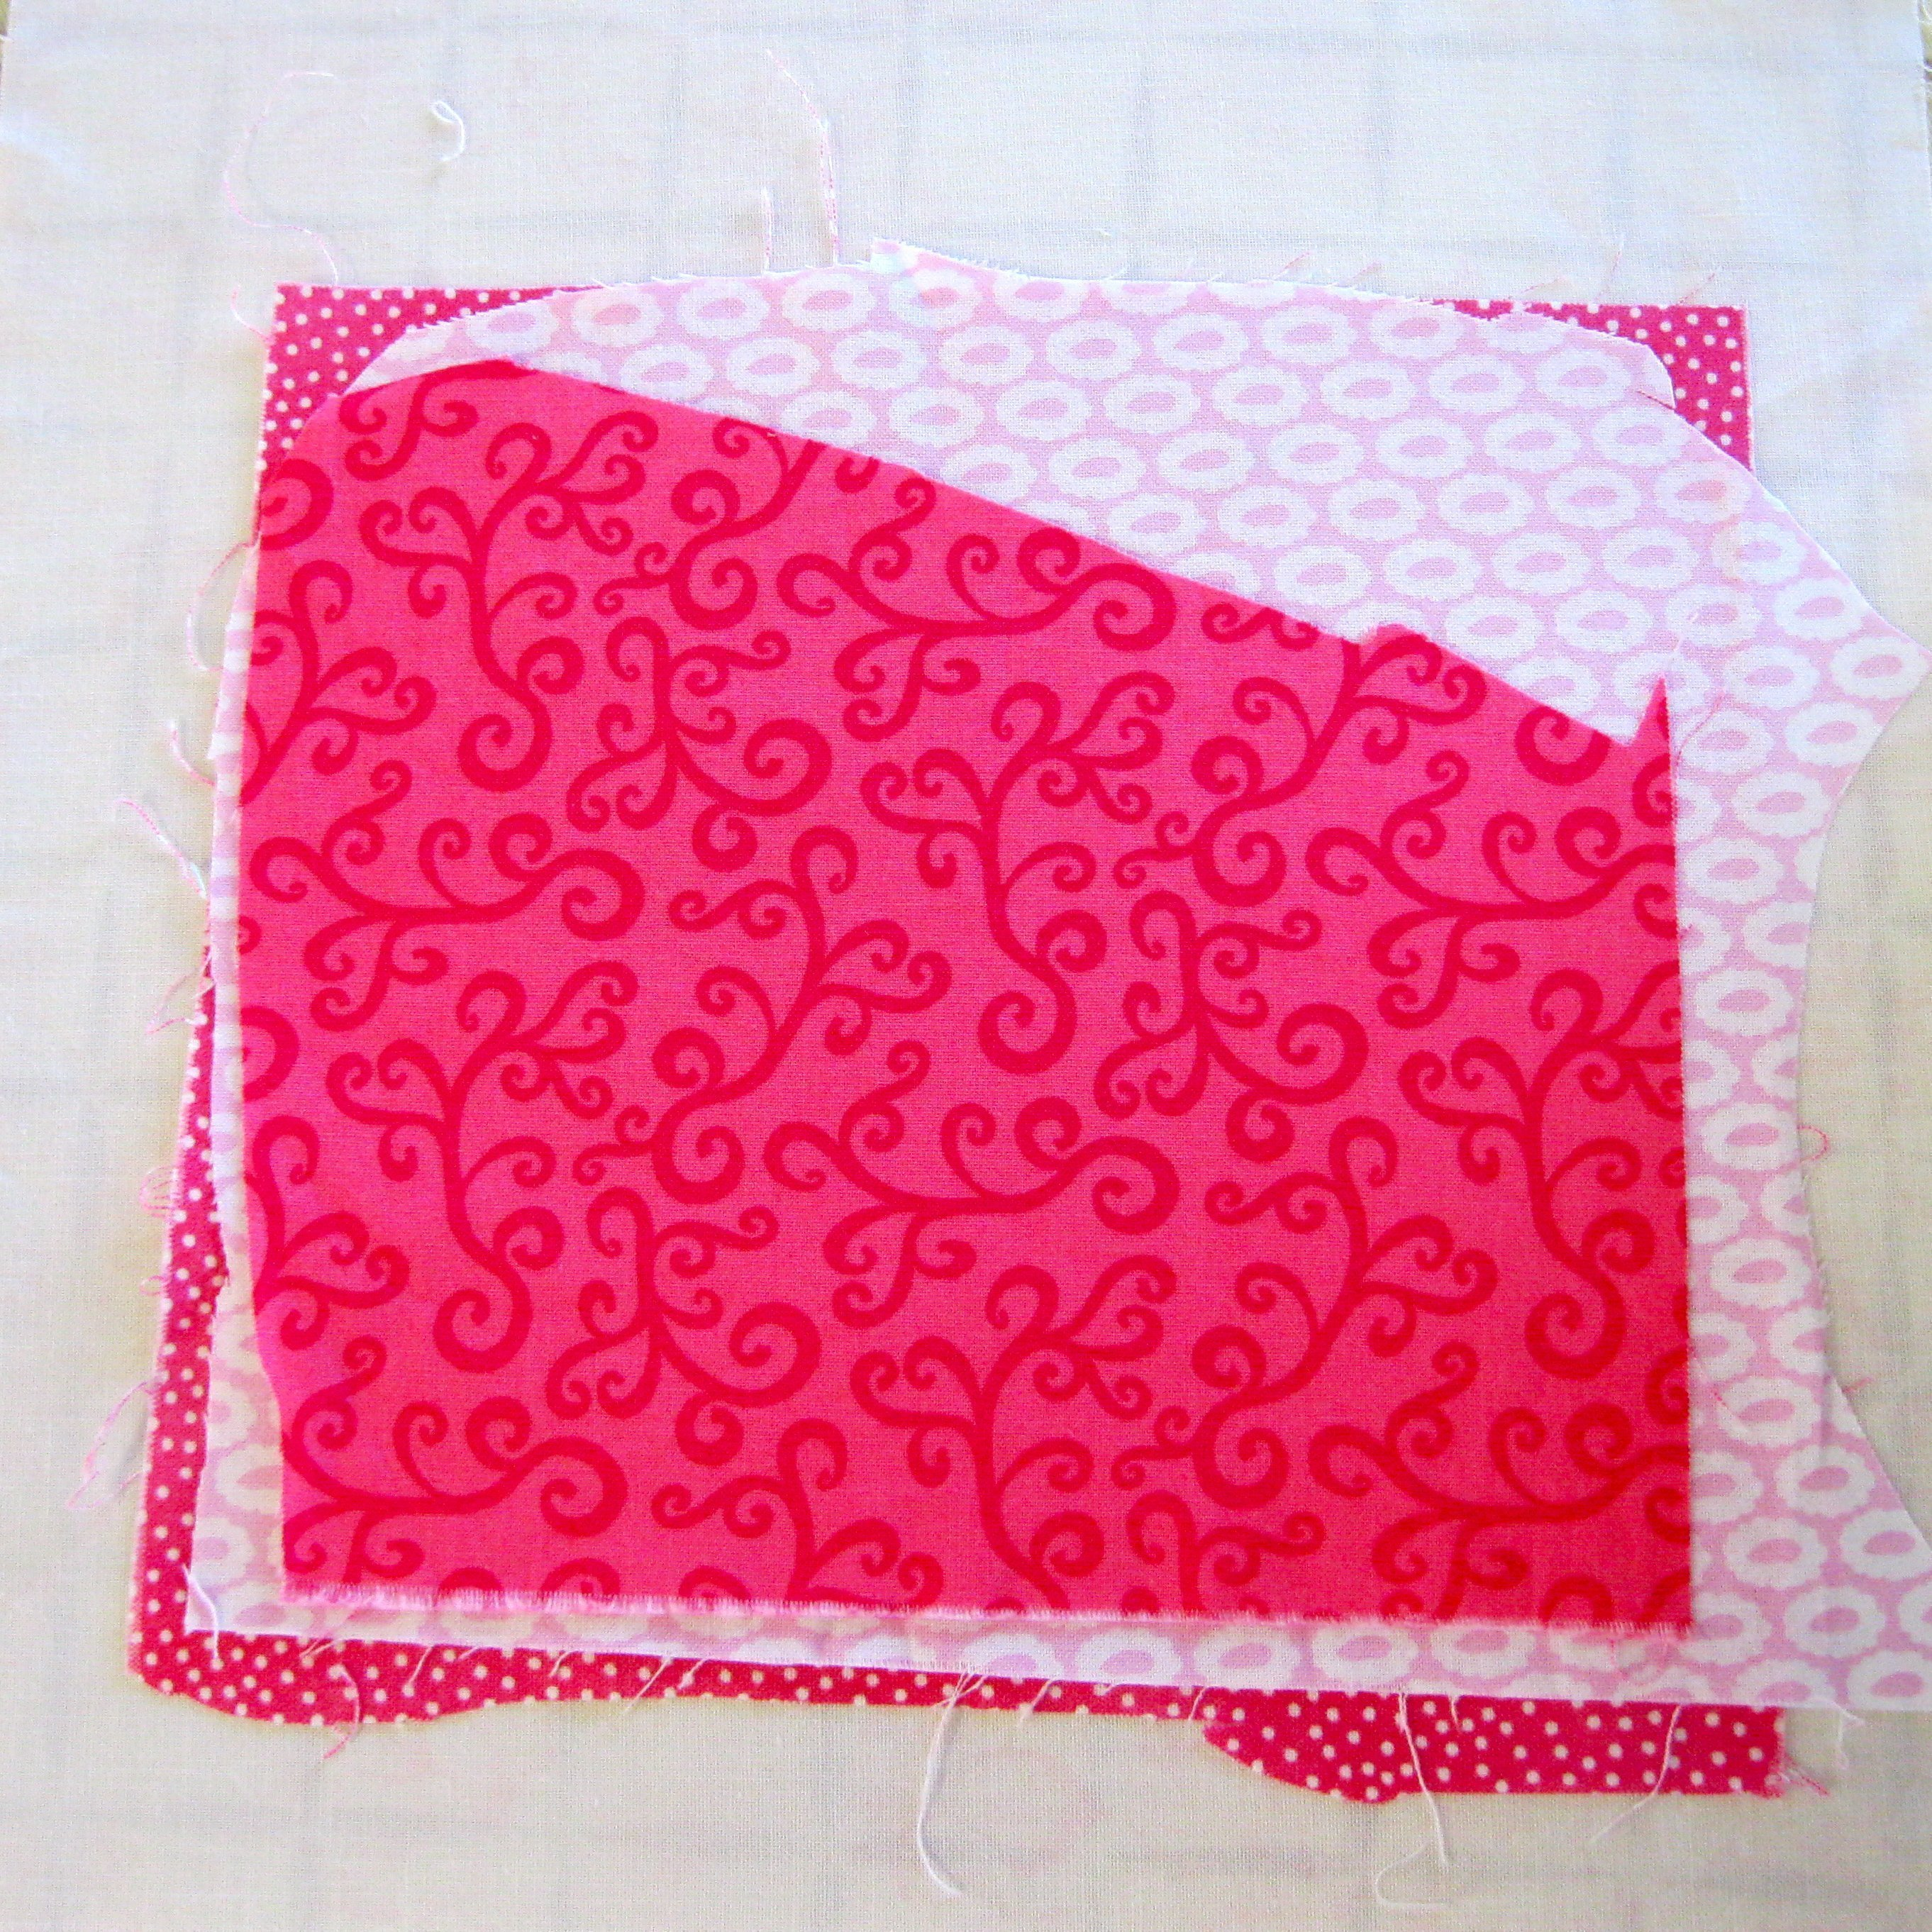 Step 3 - stack 5 pieces of fabric